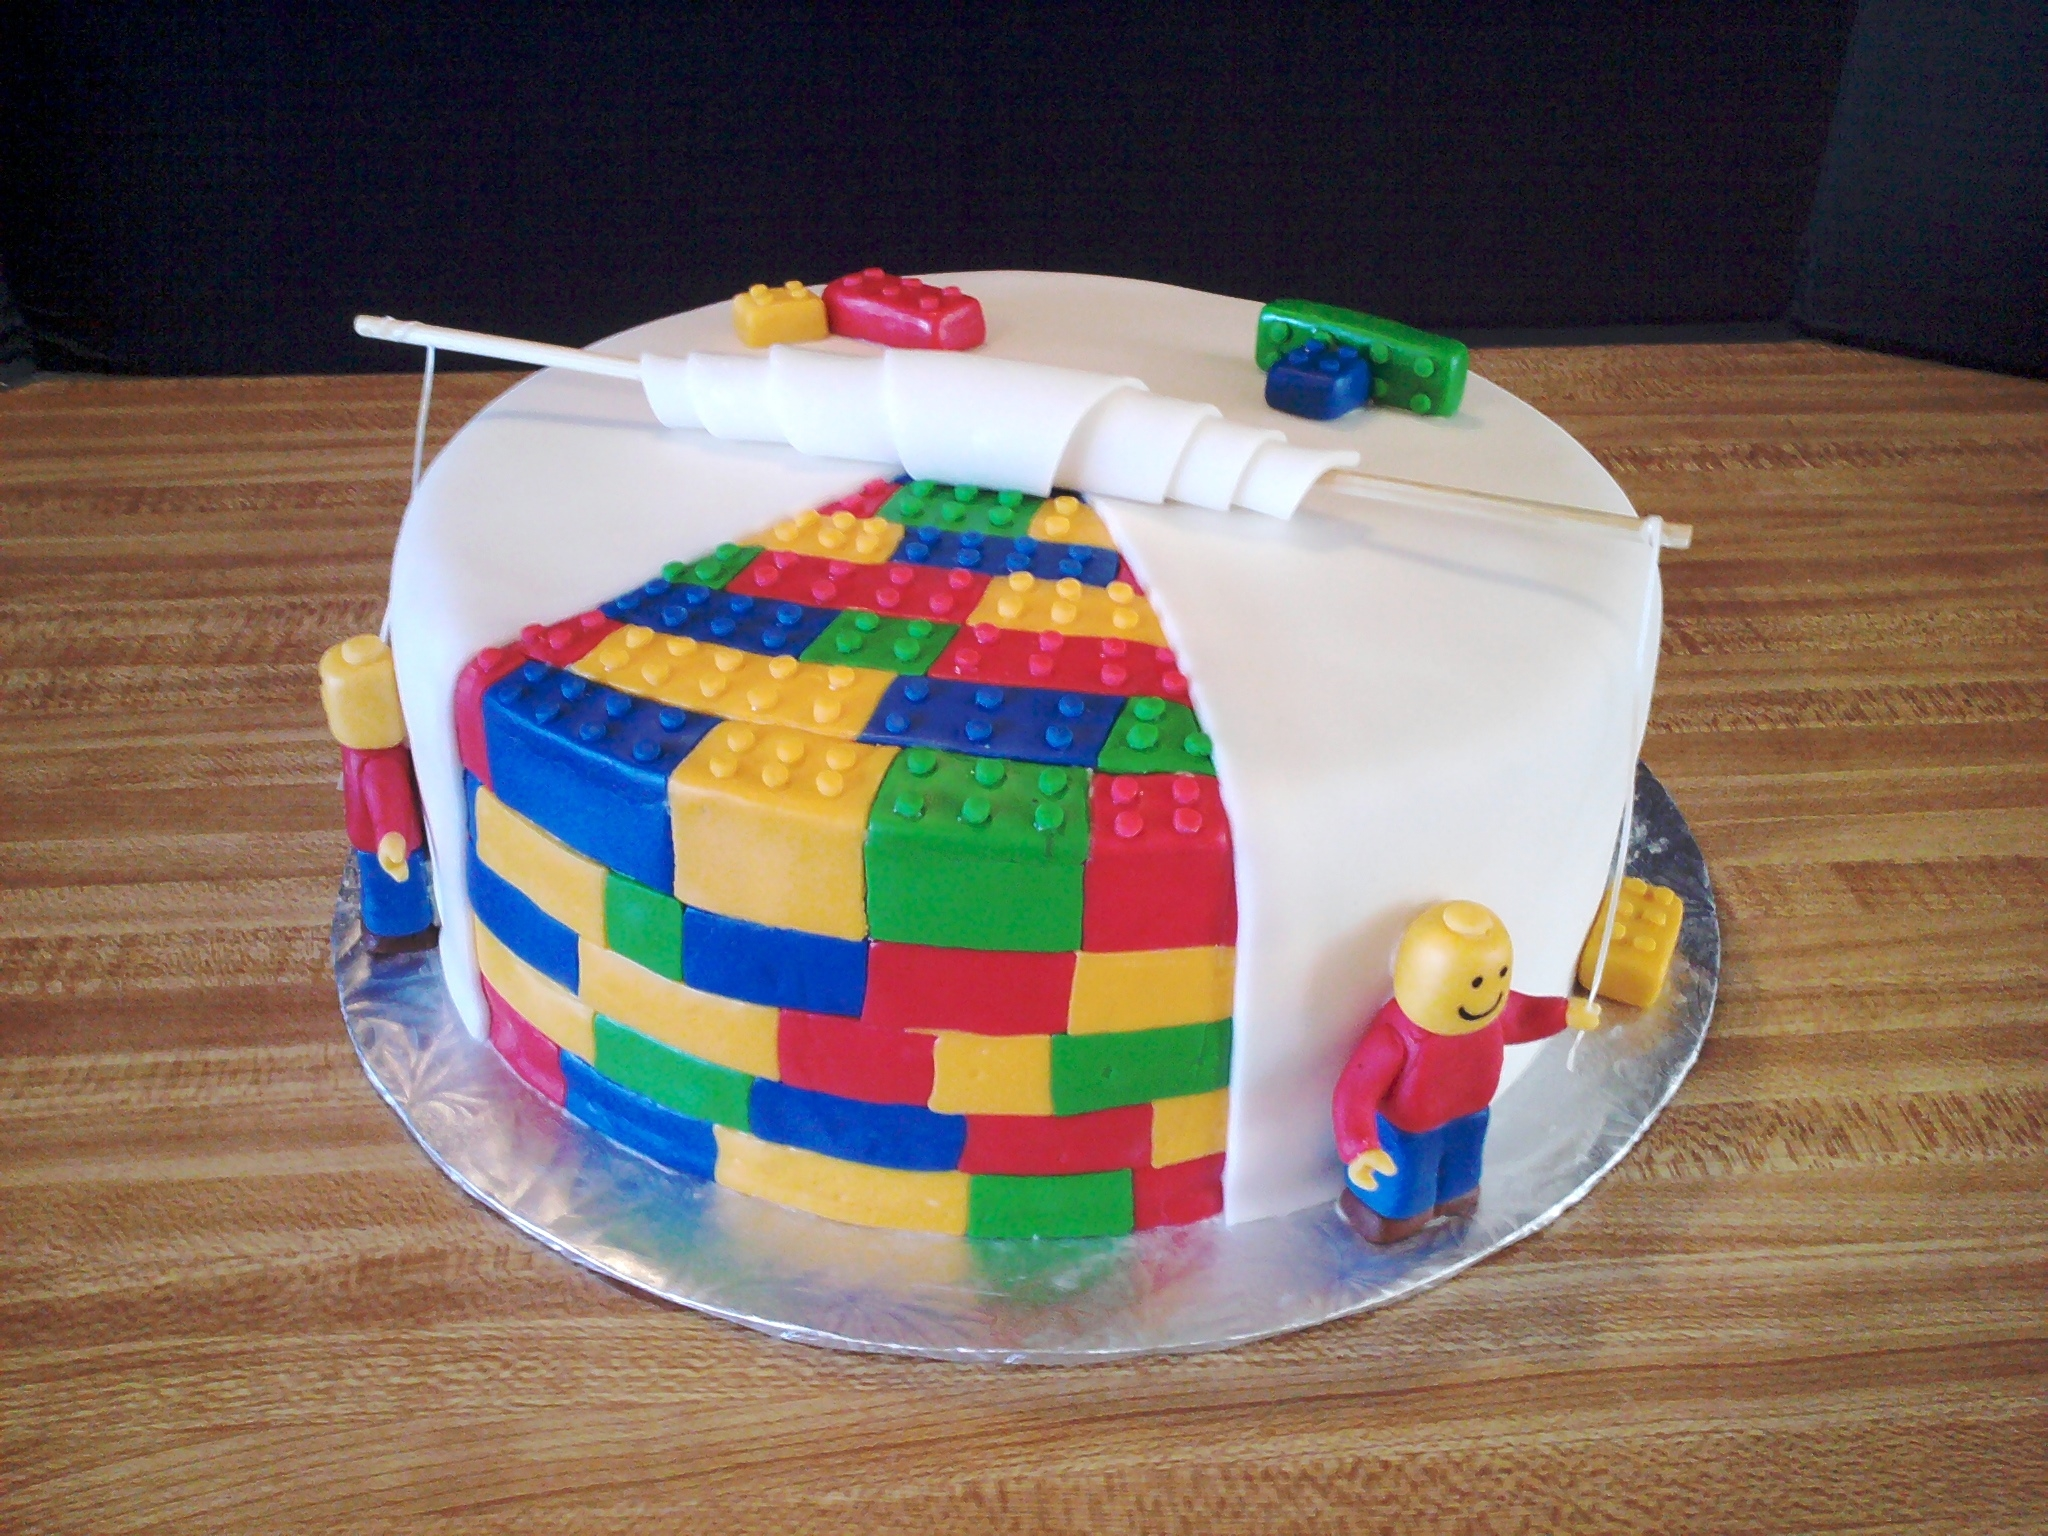 Lego Cake  10 inch Chocolate cake with Vanilla Icing, covered in fondant. Legos and Lego men made of fondant. Dental floss ropes and bamboo skewer...